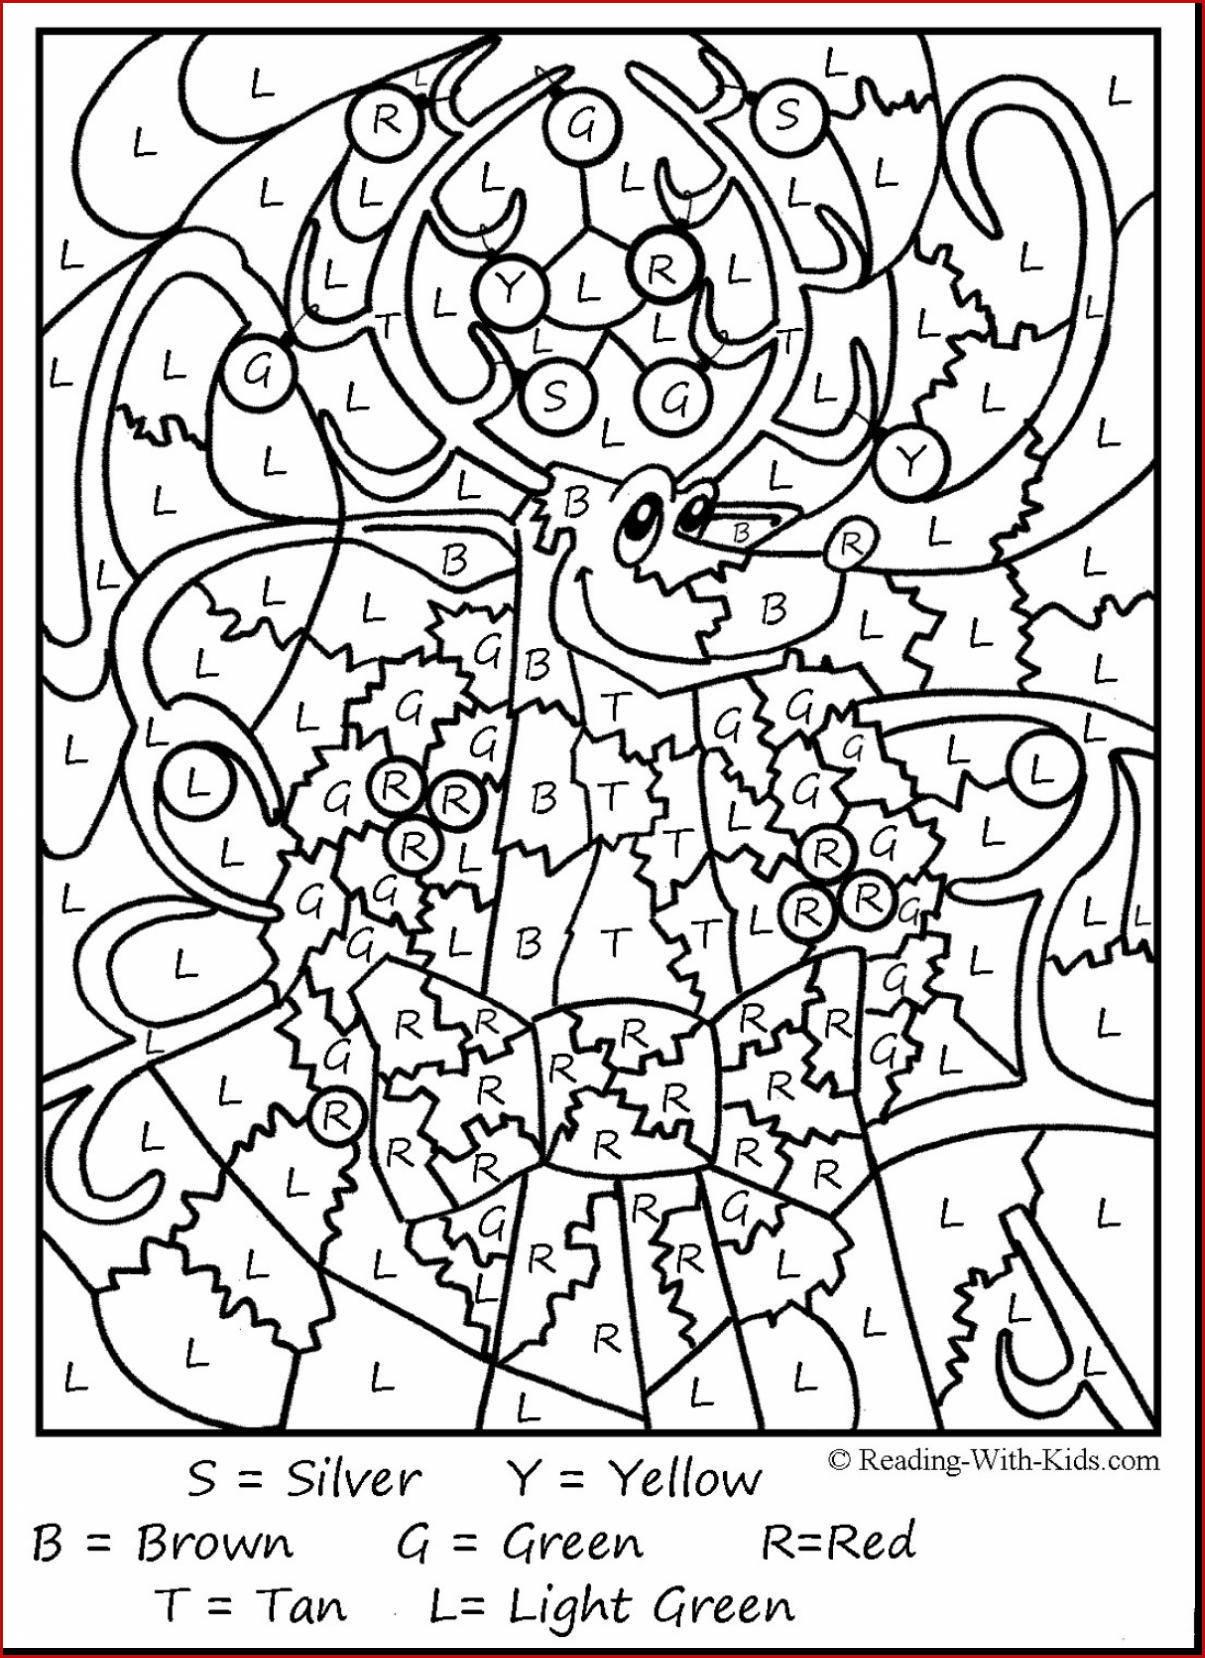 Coloring Worksheets for 3rd Grade Coloring Amazing 3rd Grade Coloring Pages Image Ideas 2nd